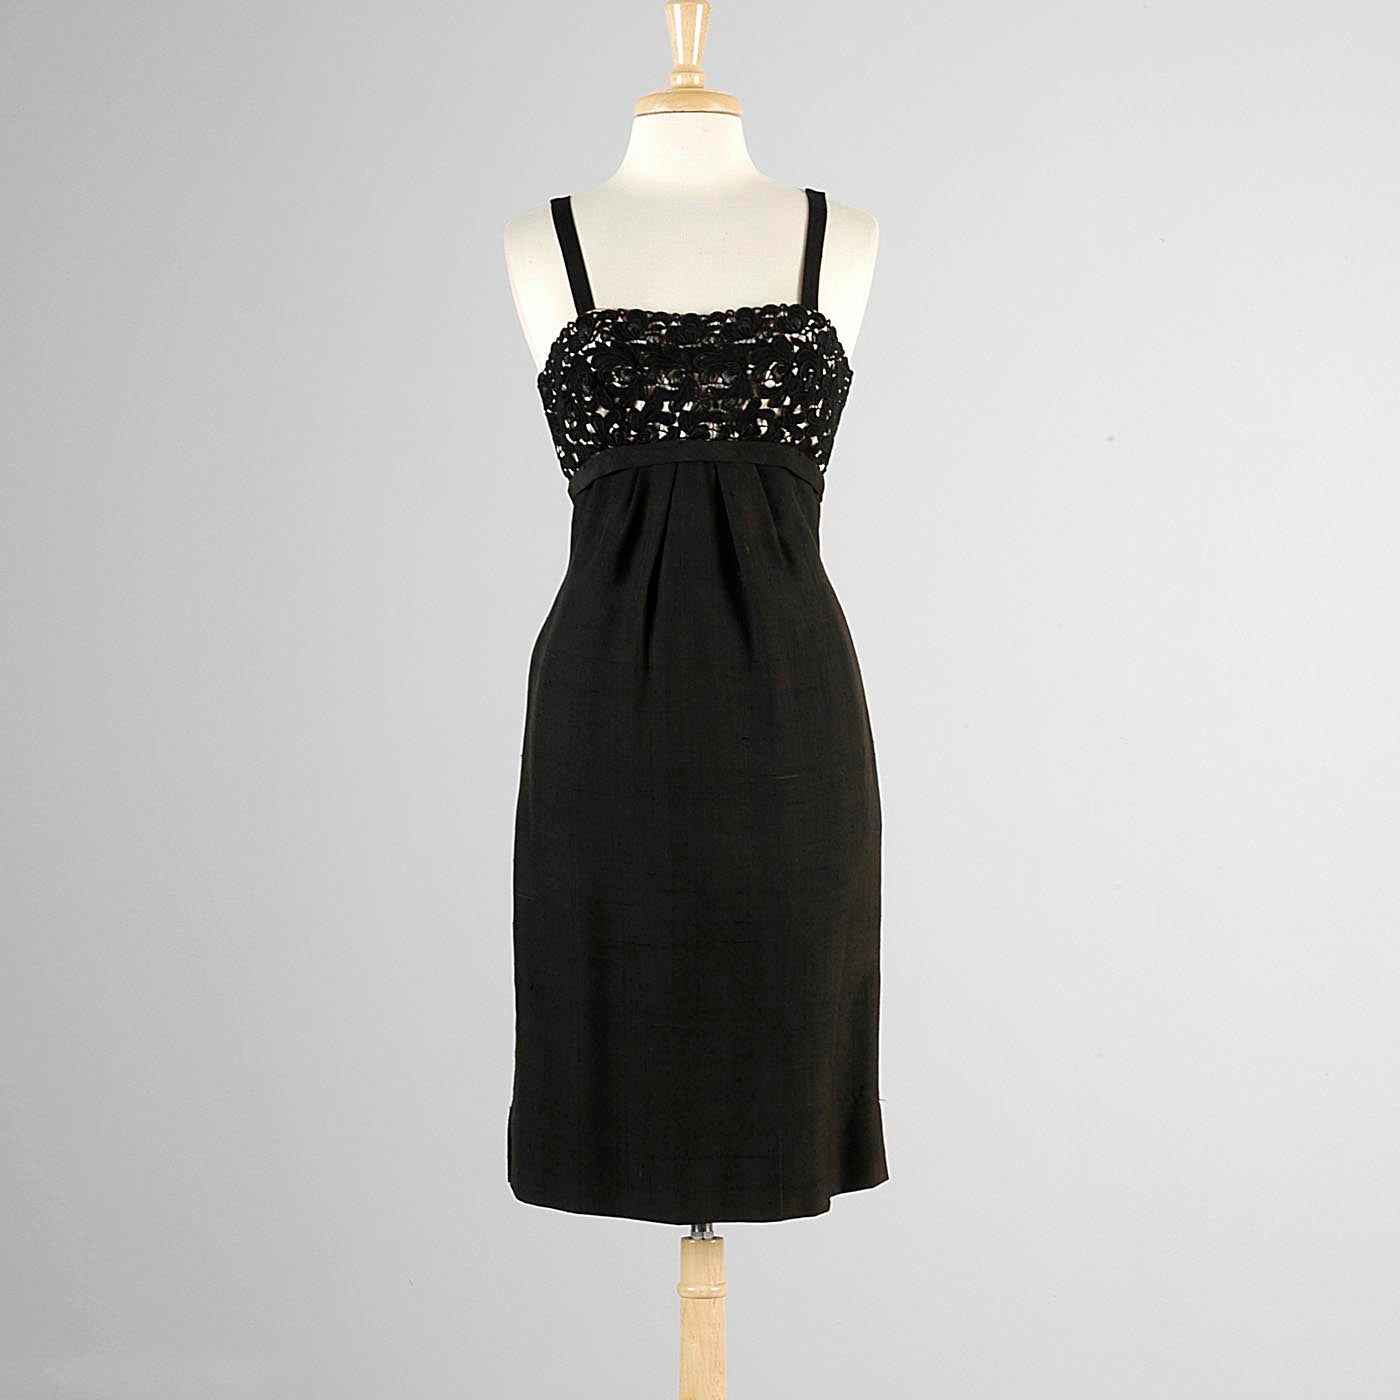 1950s Black Silk Dress with Illusion Bust